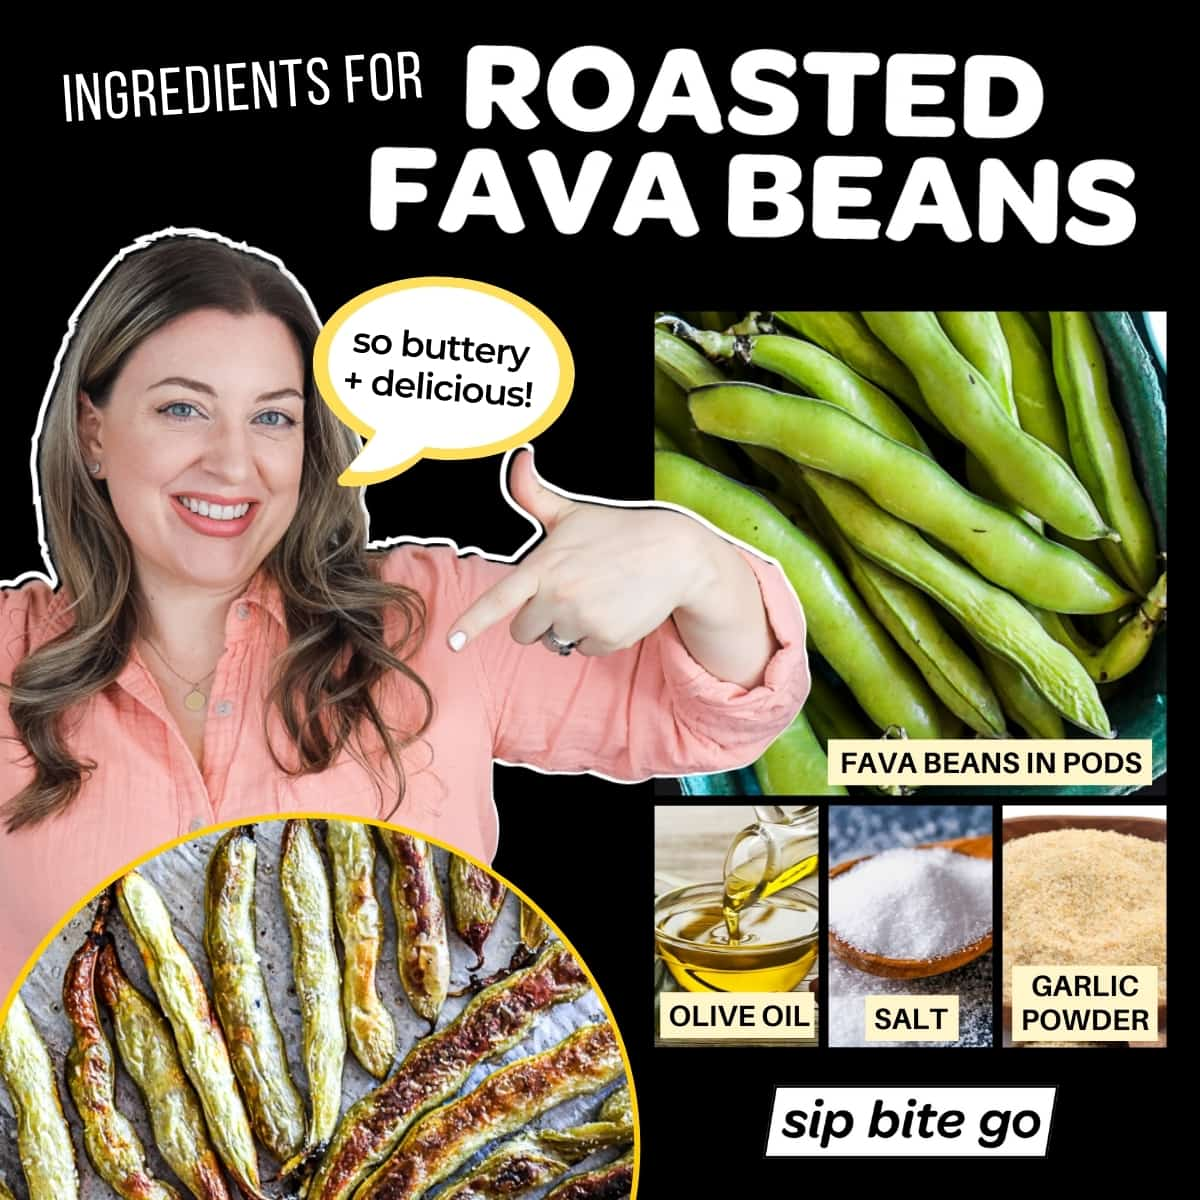 infographic chart for oven roasted fava beans ingredients